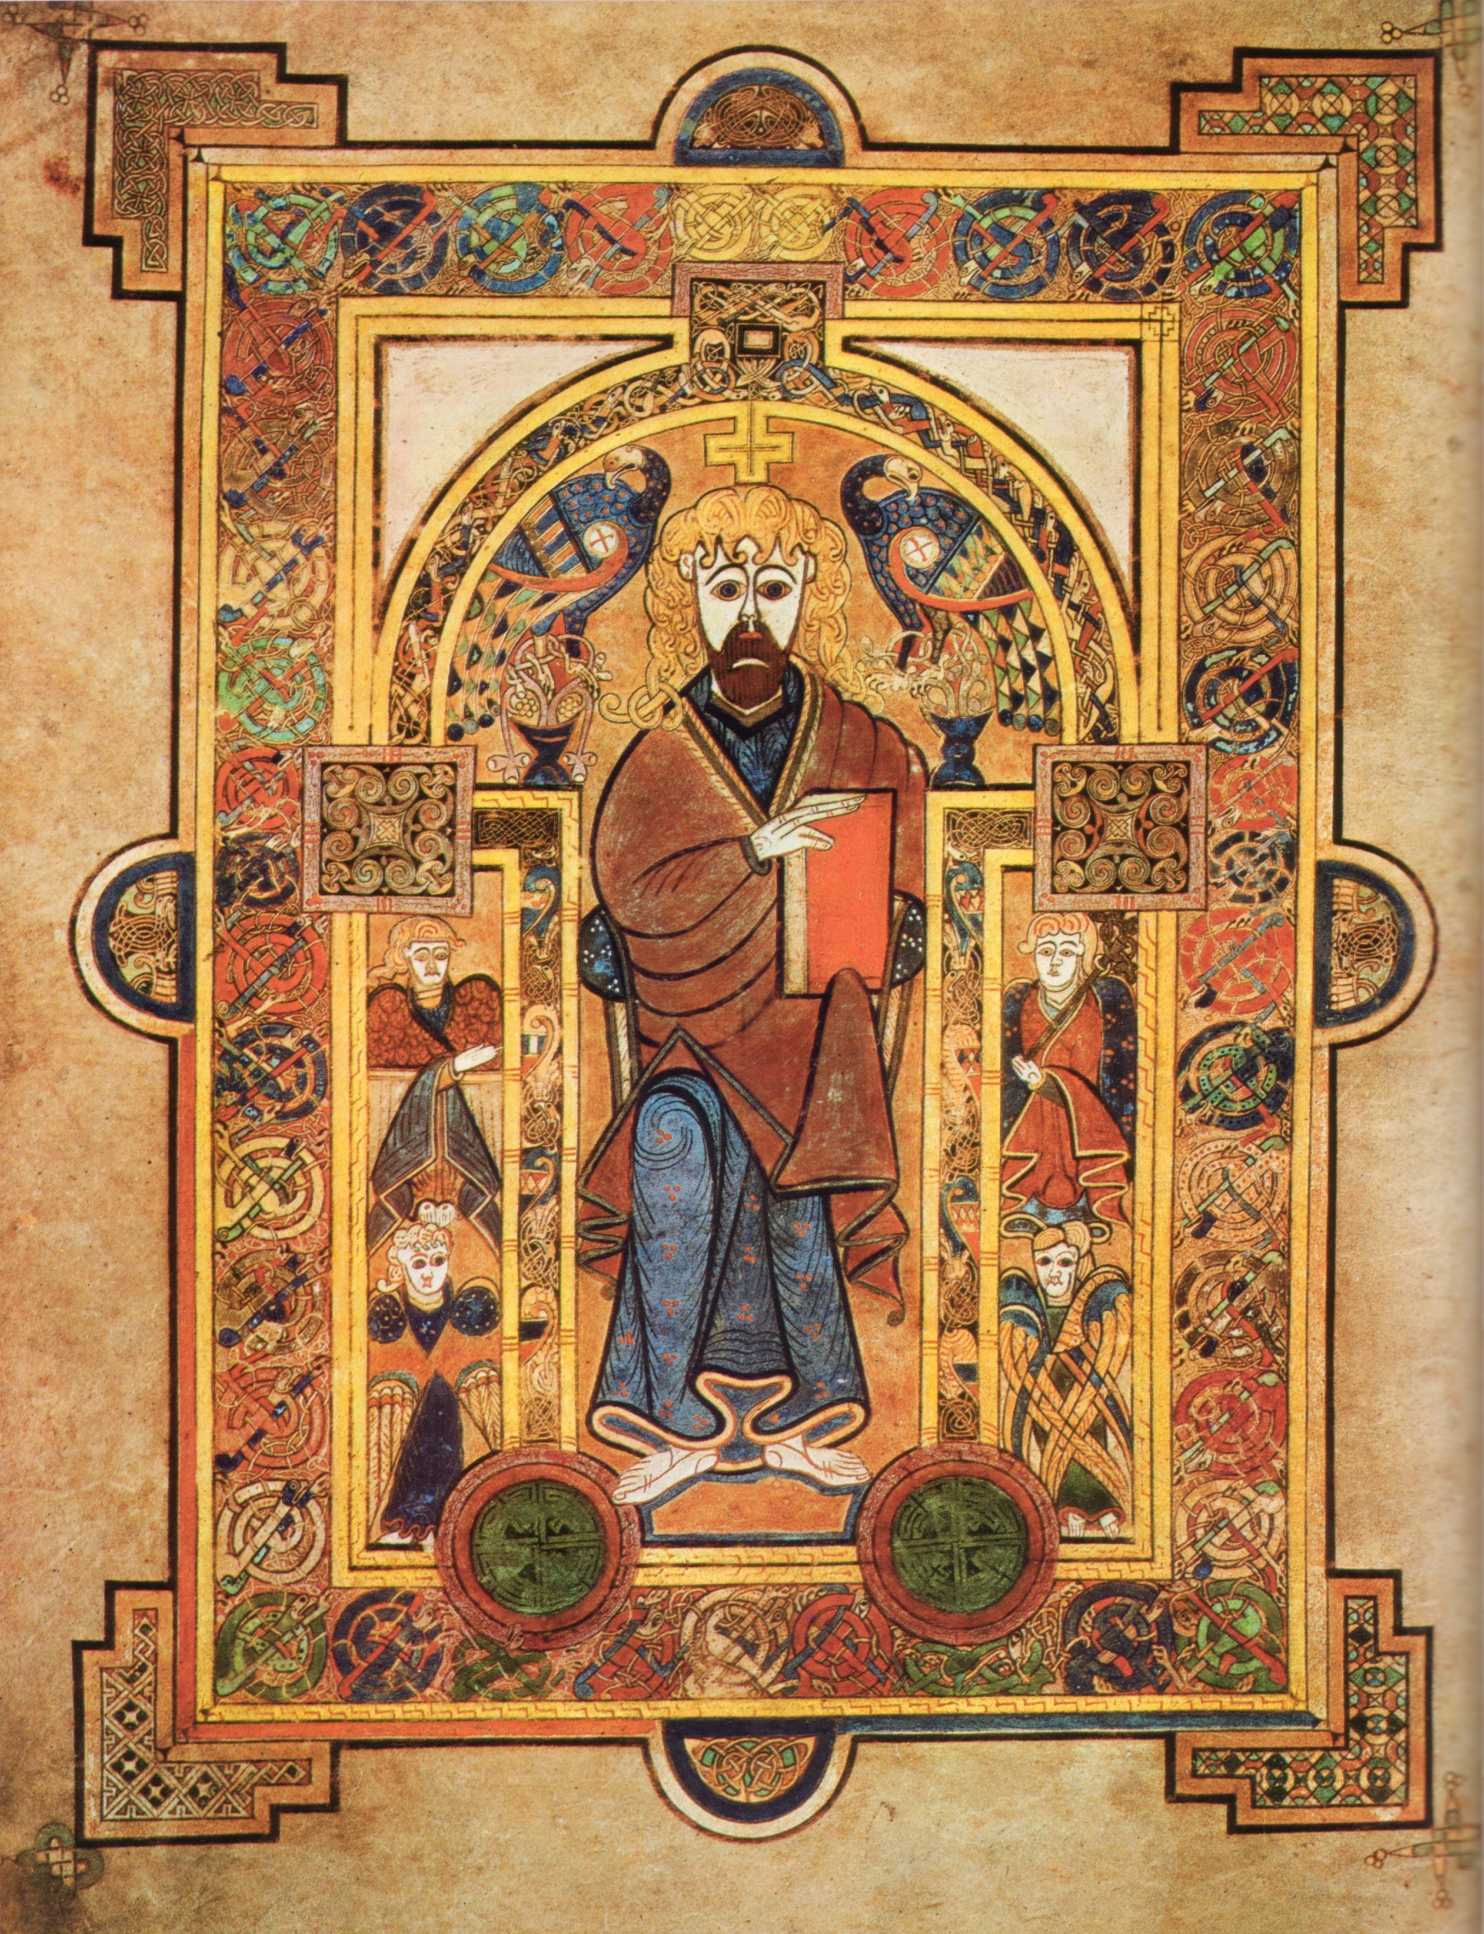 A page from the Book of Kells, an illuminated manuscript created in the  British Isles in the late 8th or early 9th century